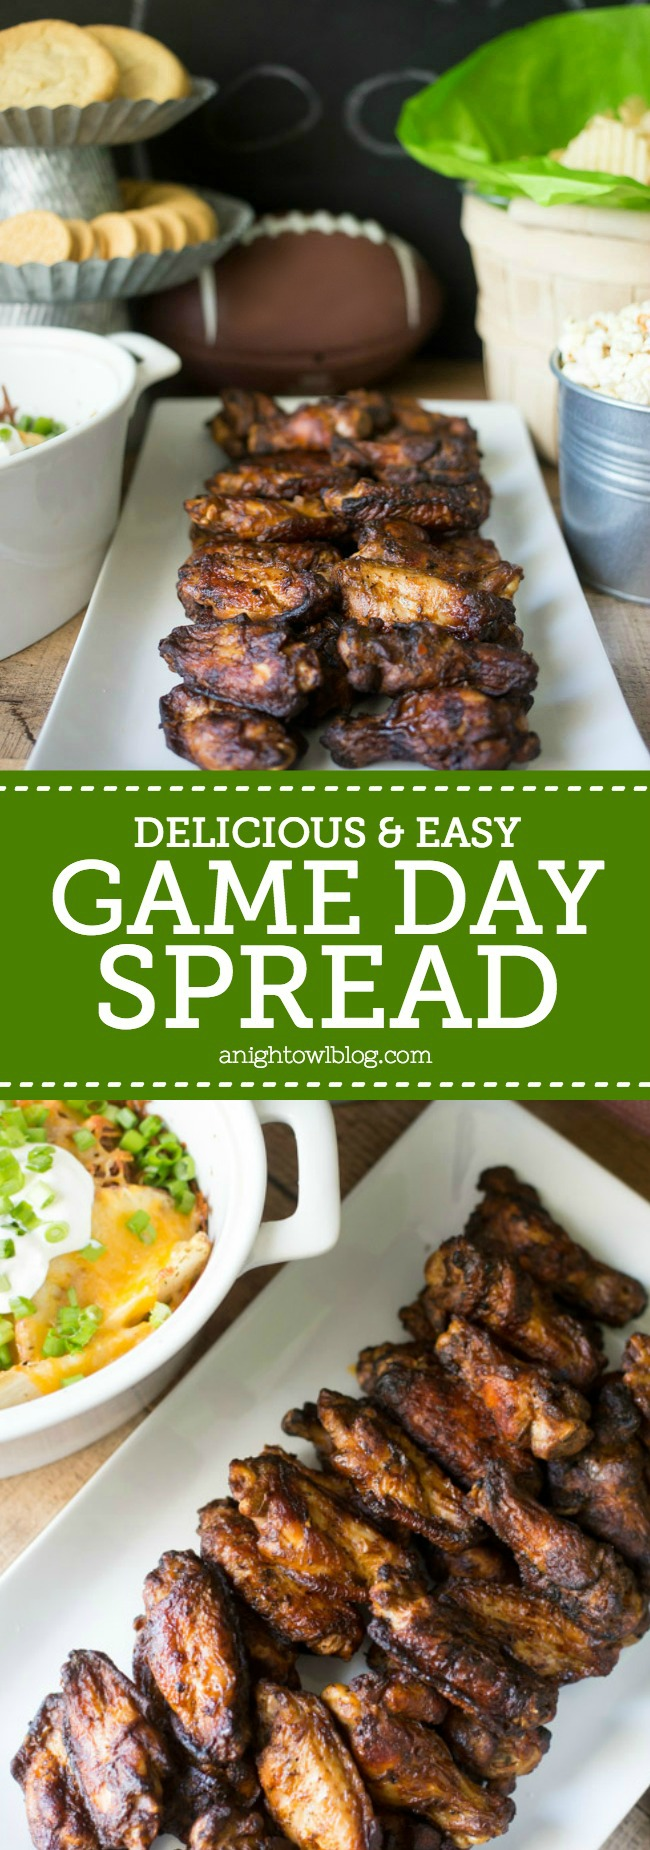 Put together a delicious and easy Game Day Spread with these simple tips and Cooked Perfect Premium Fire Grilled Wings!